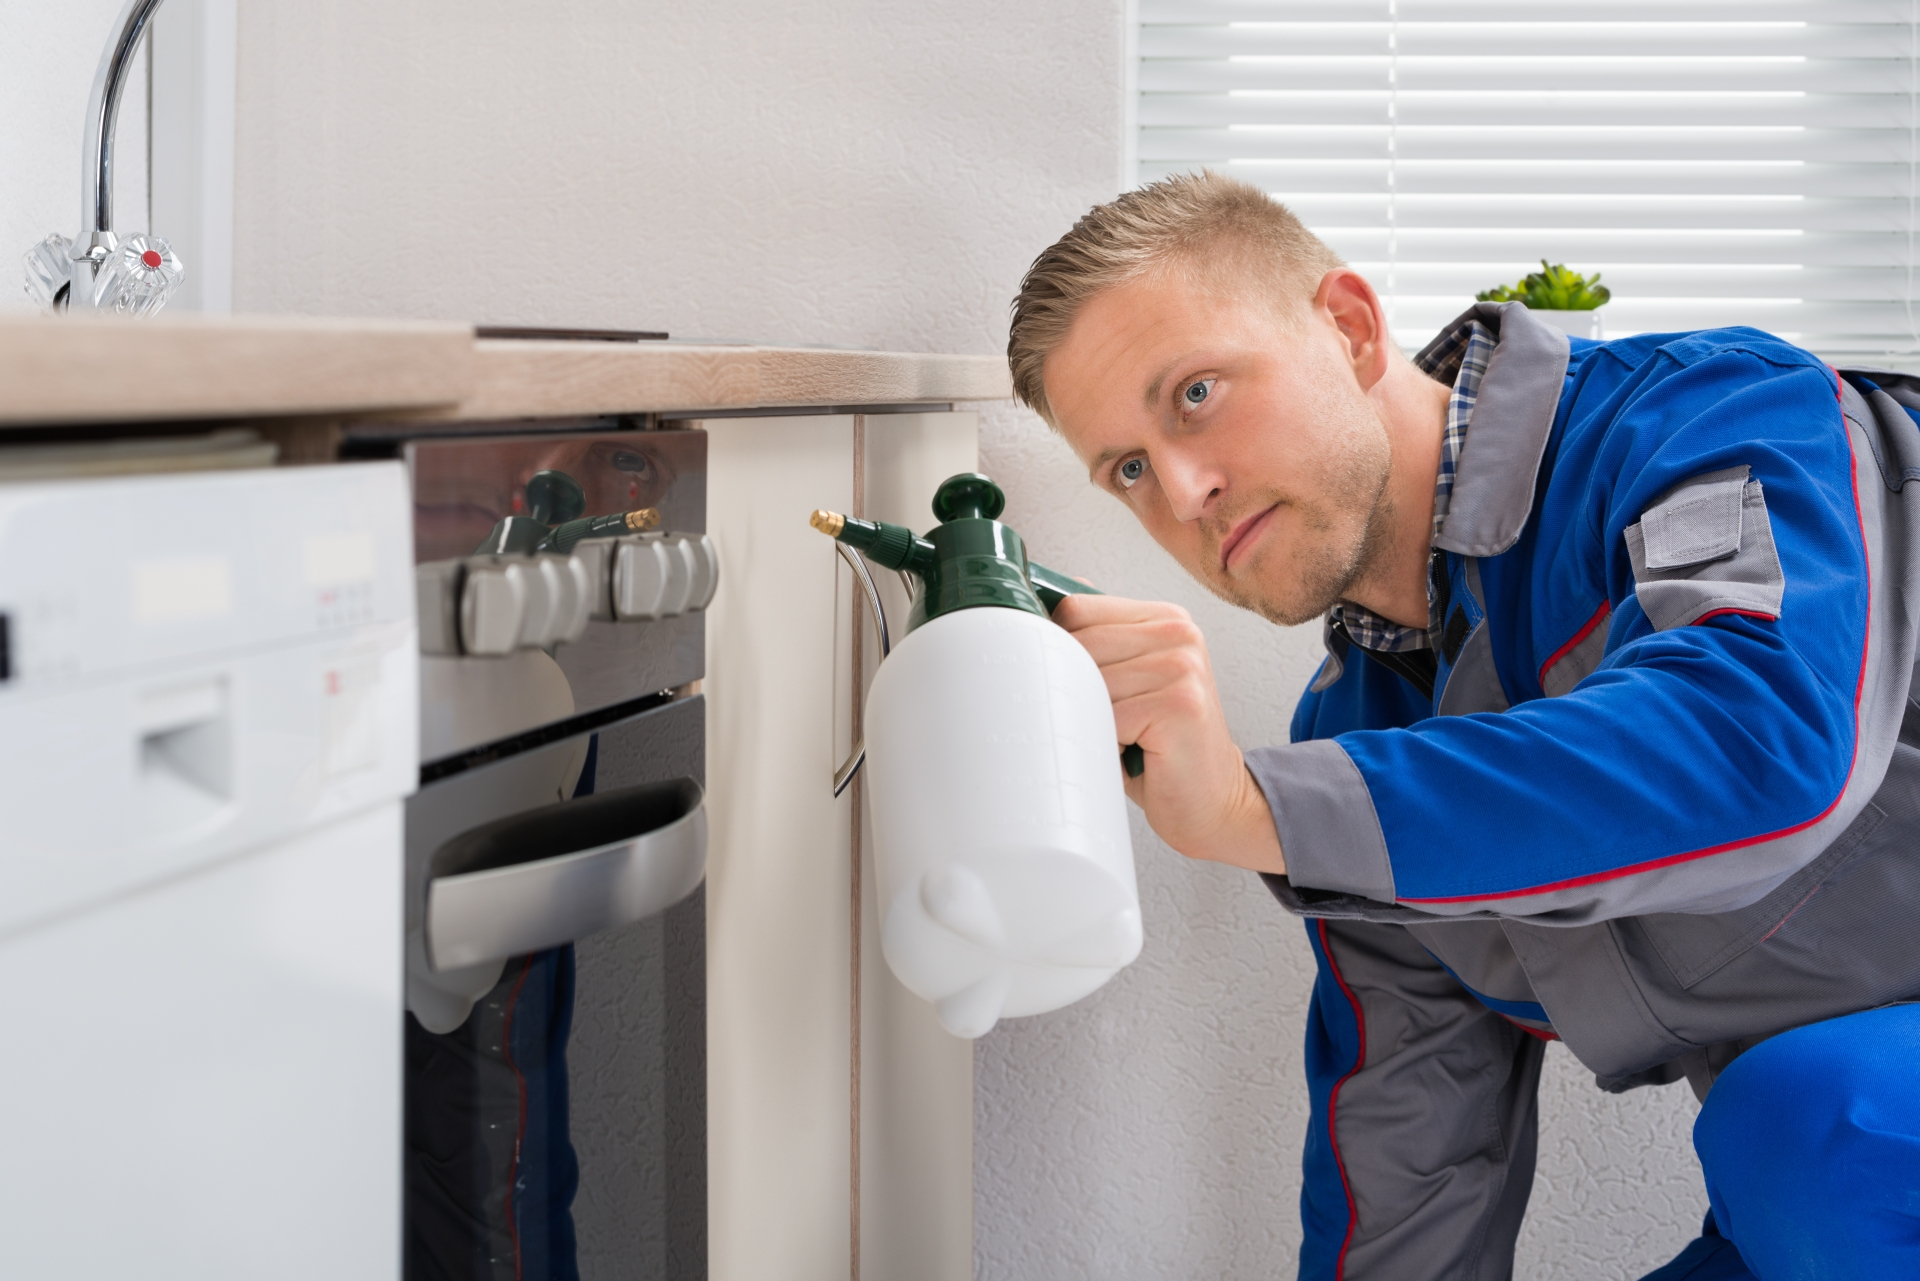 Pest Inspection, Pest Control in Caterham, Chaldon, Woldingham, CR3. Call Now 020 8166 9746